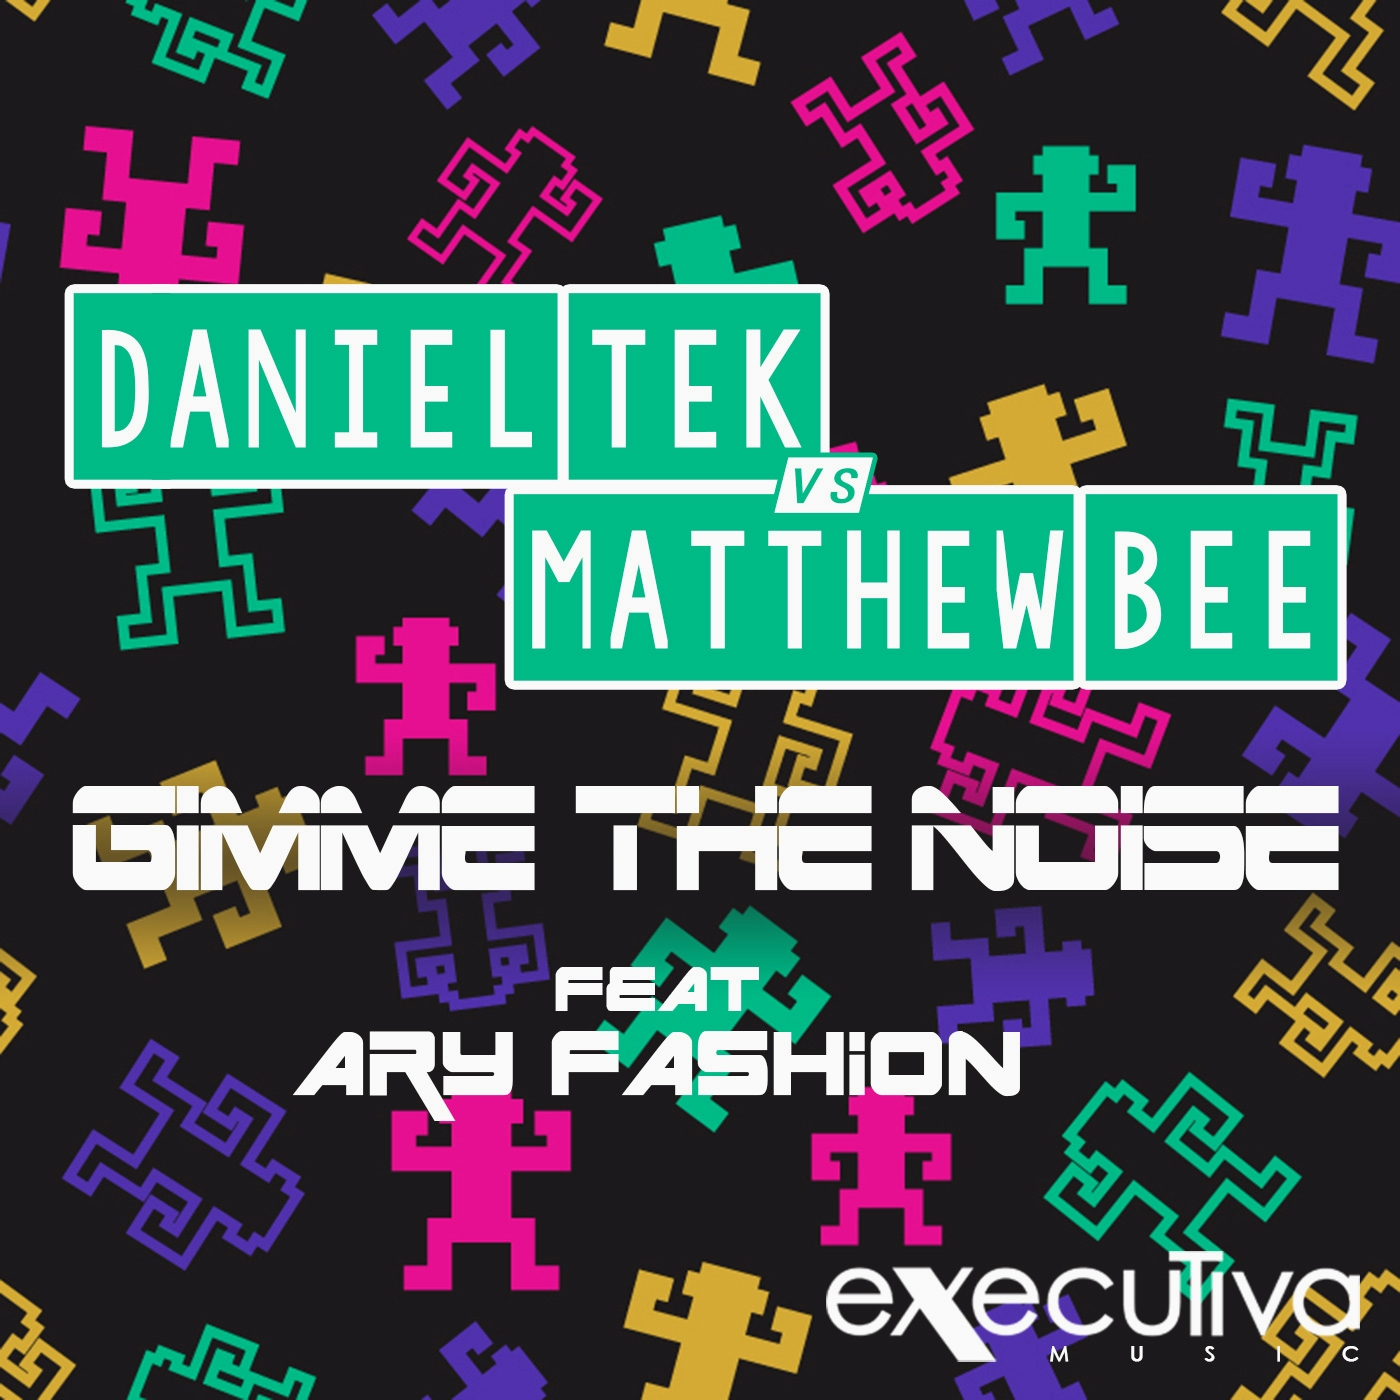 Daniel Tek & Matthew Bee - Gimme The Noise Feat. AryFashion (2Noise Remix)